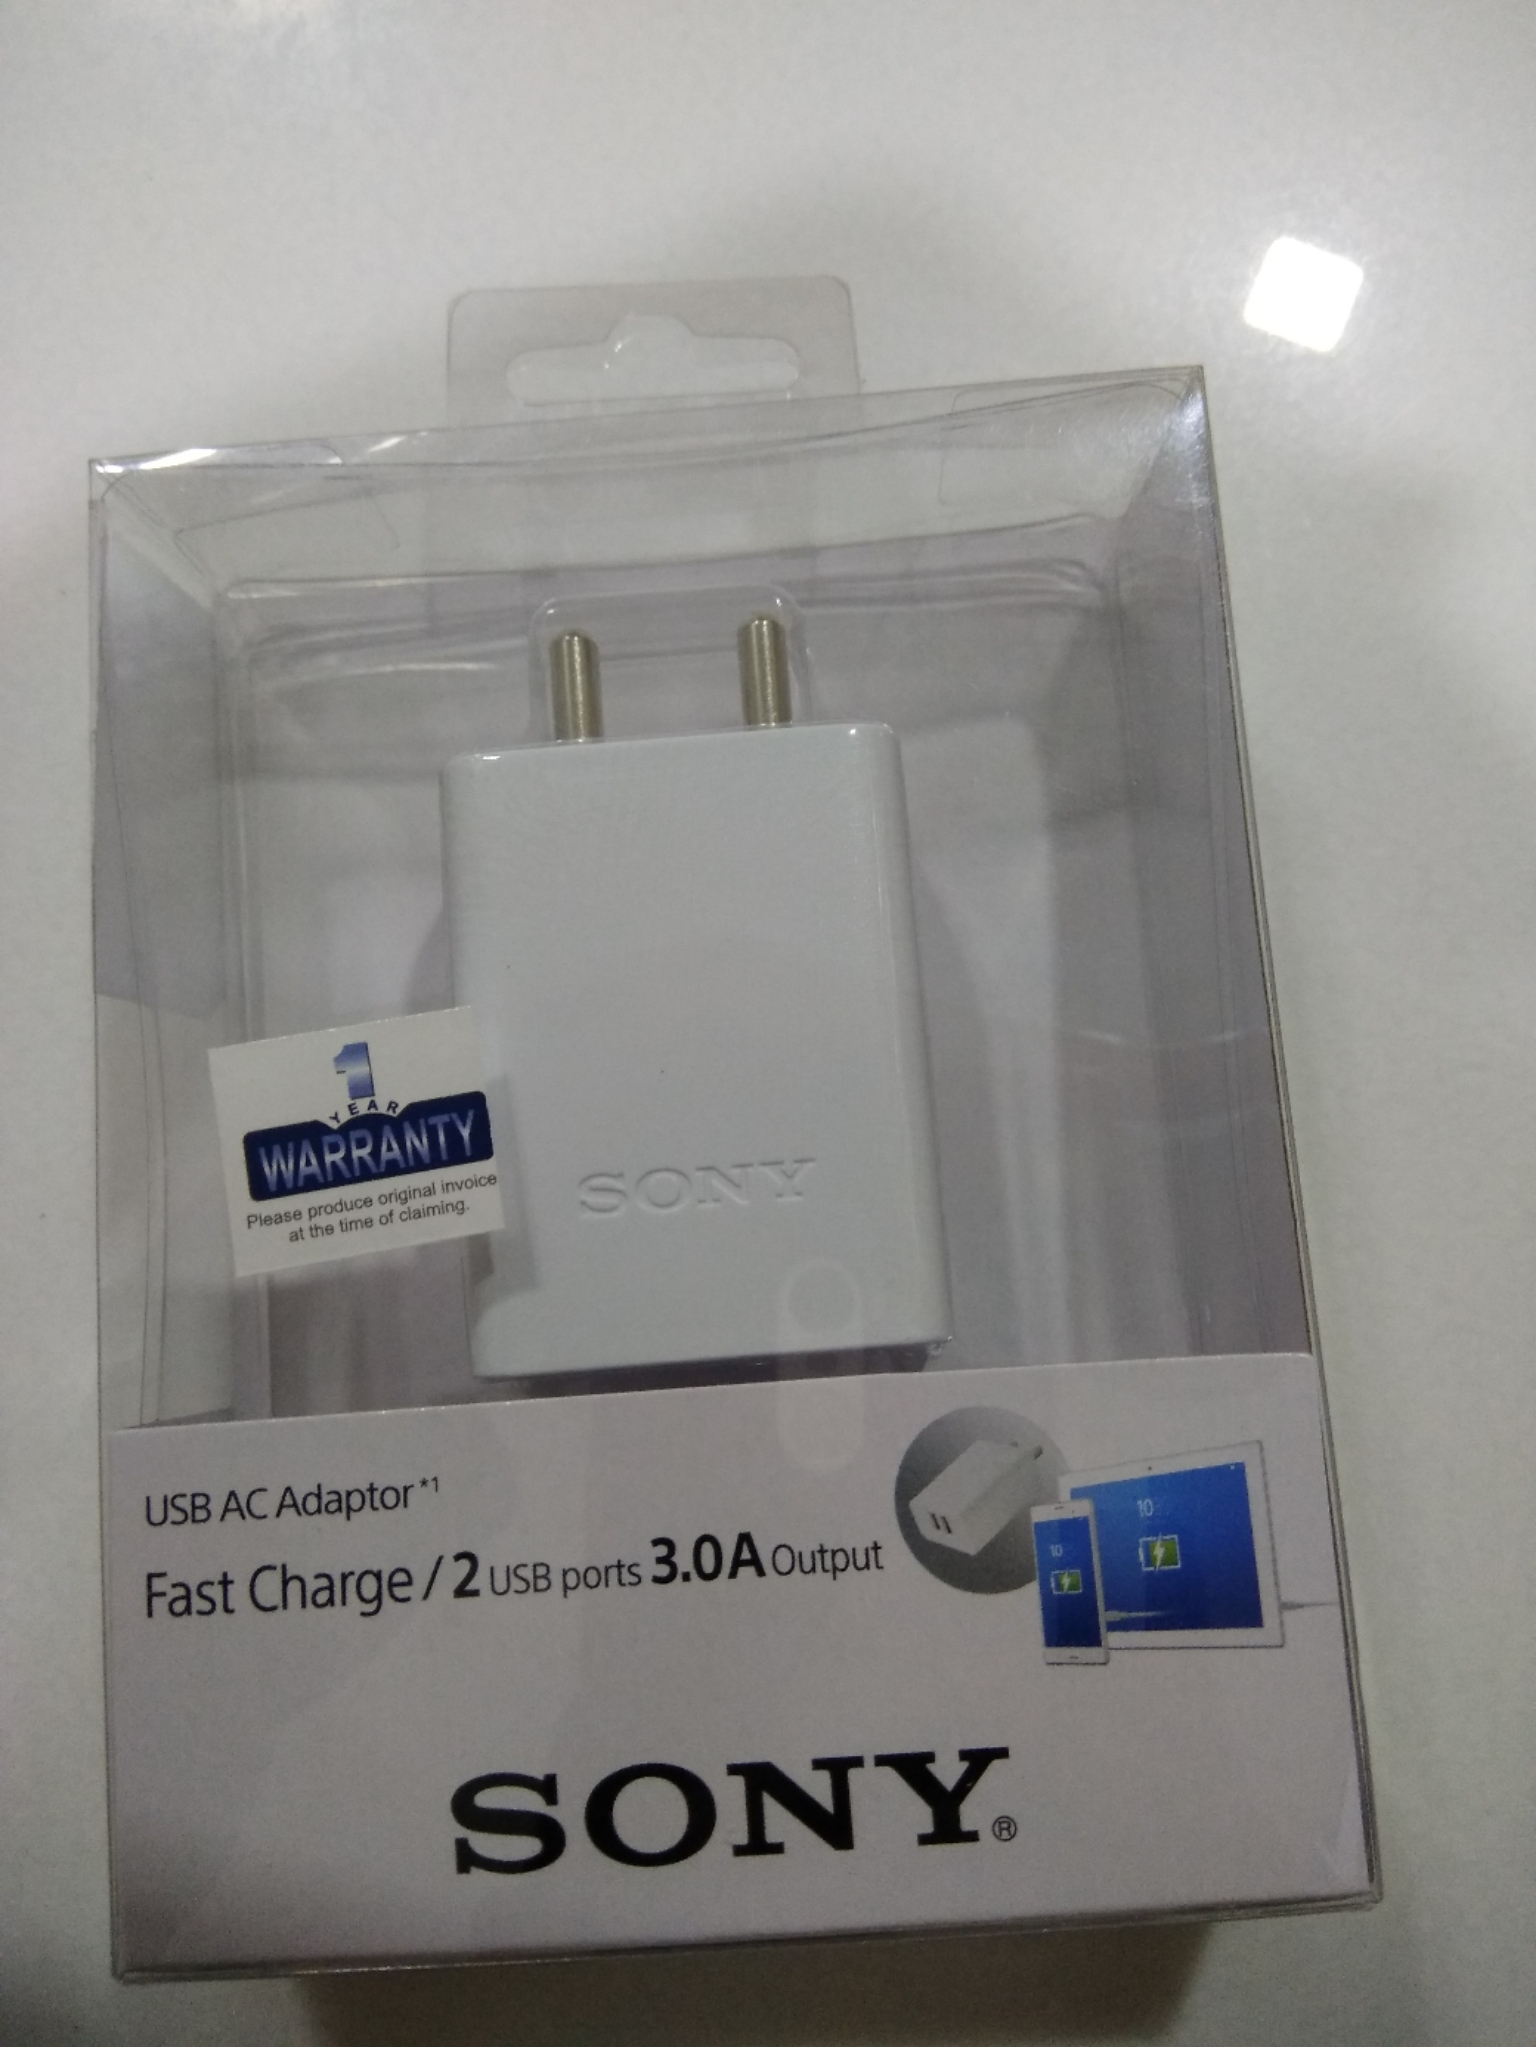 Sony Original 3.0A Fast Charging 2 Port Adapter, White CP-AD2M2 HSN:85044090